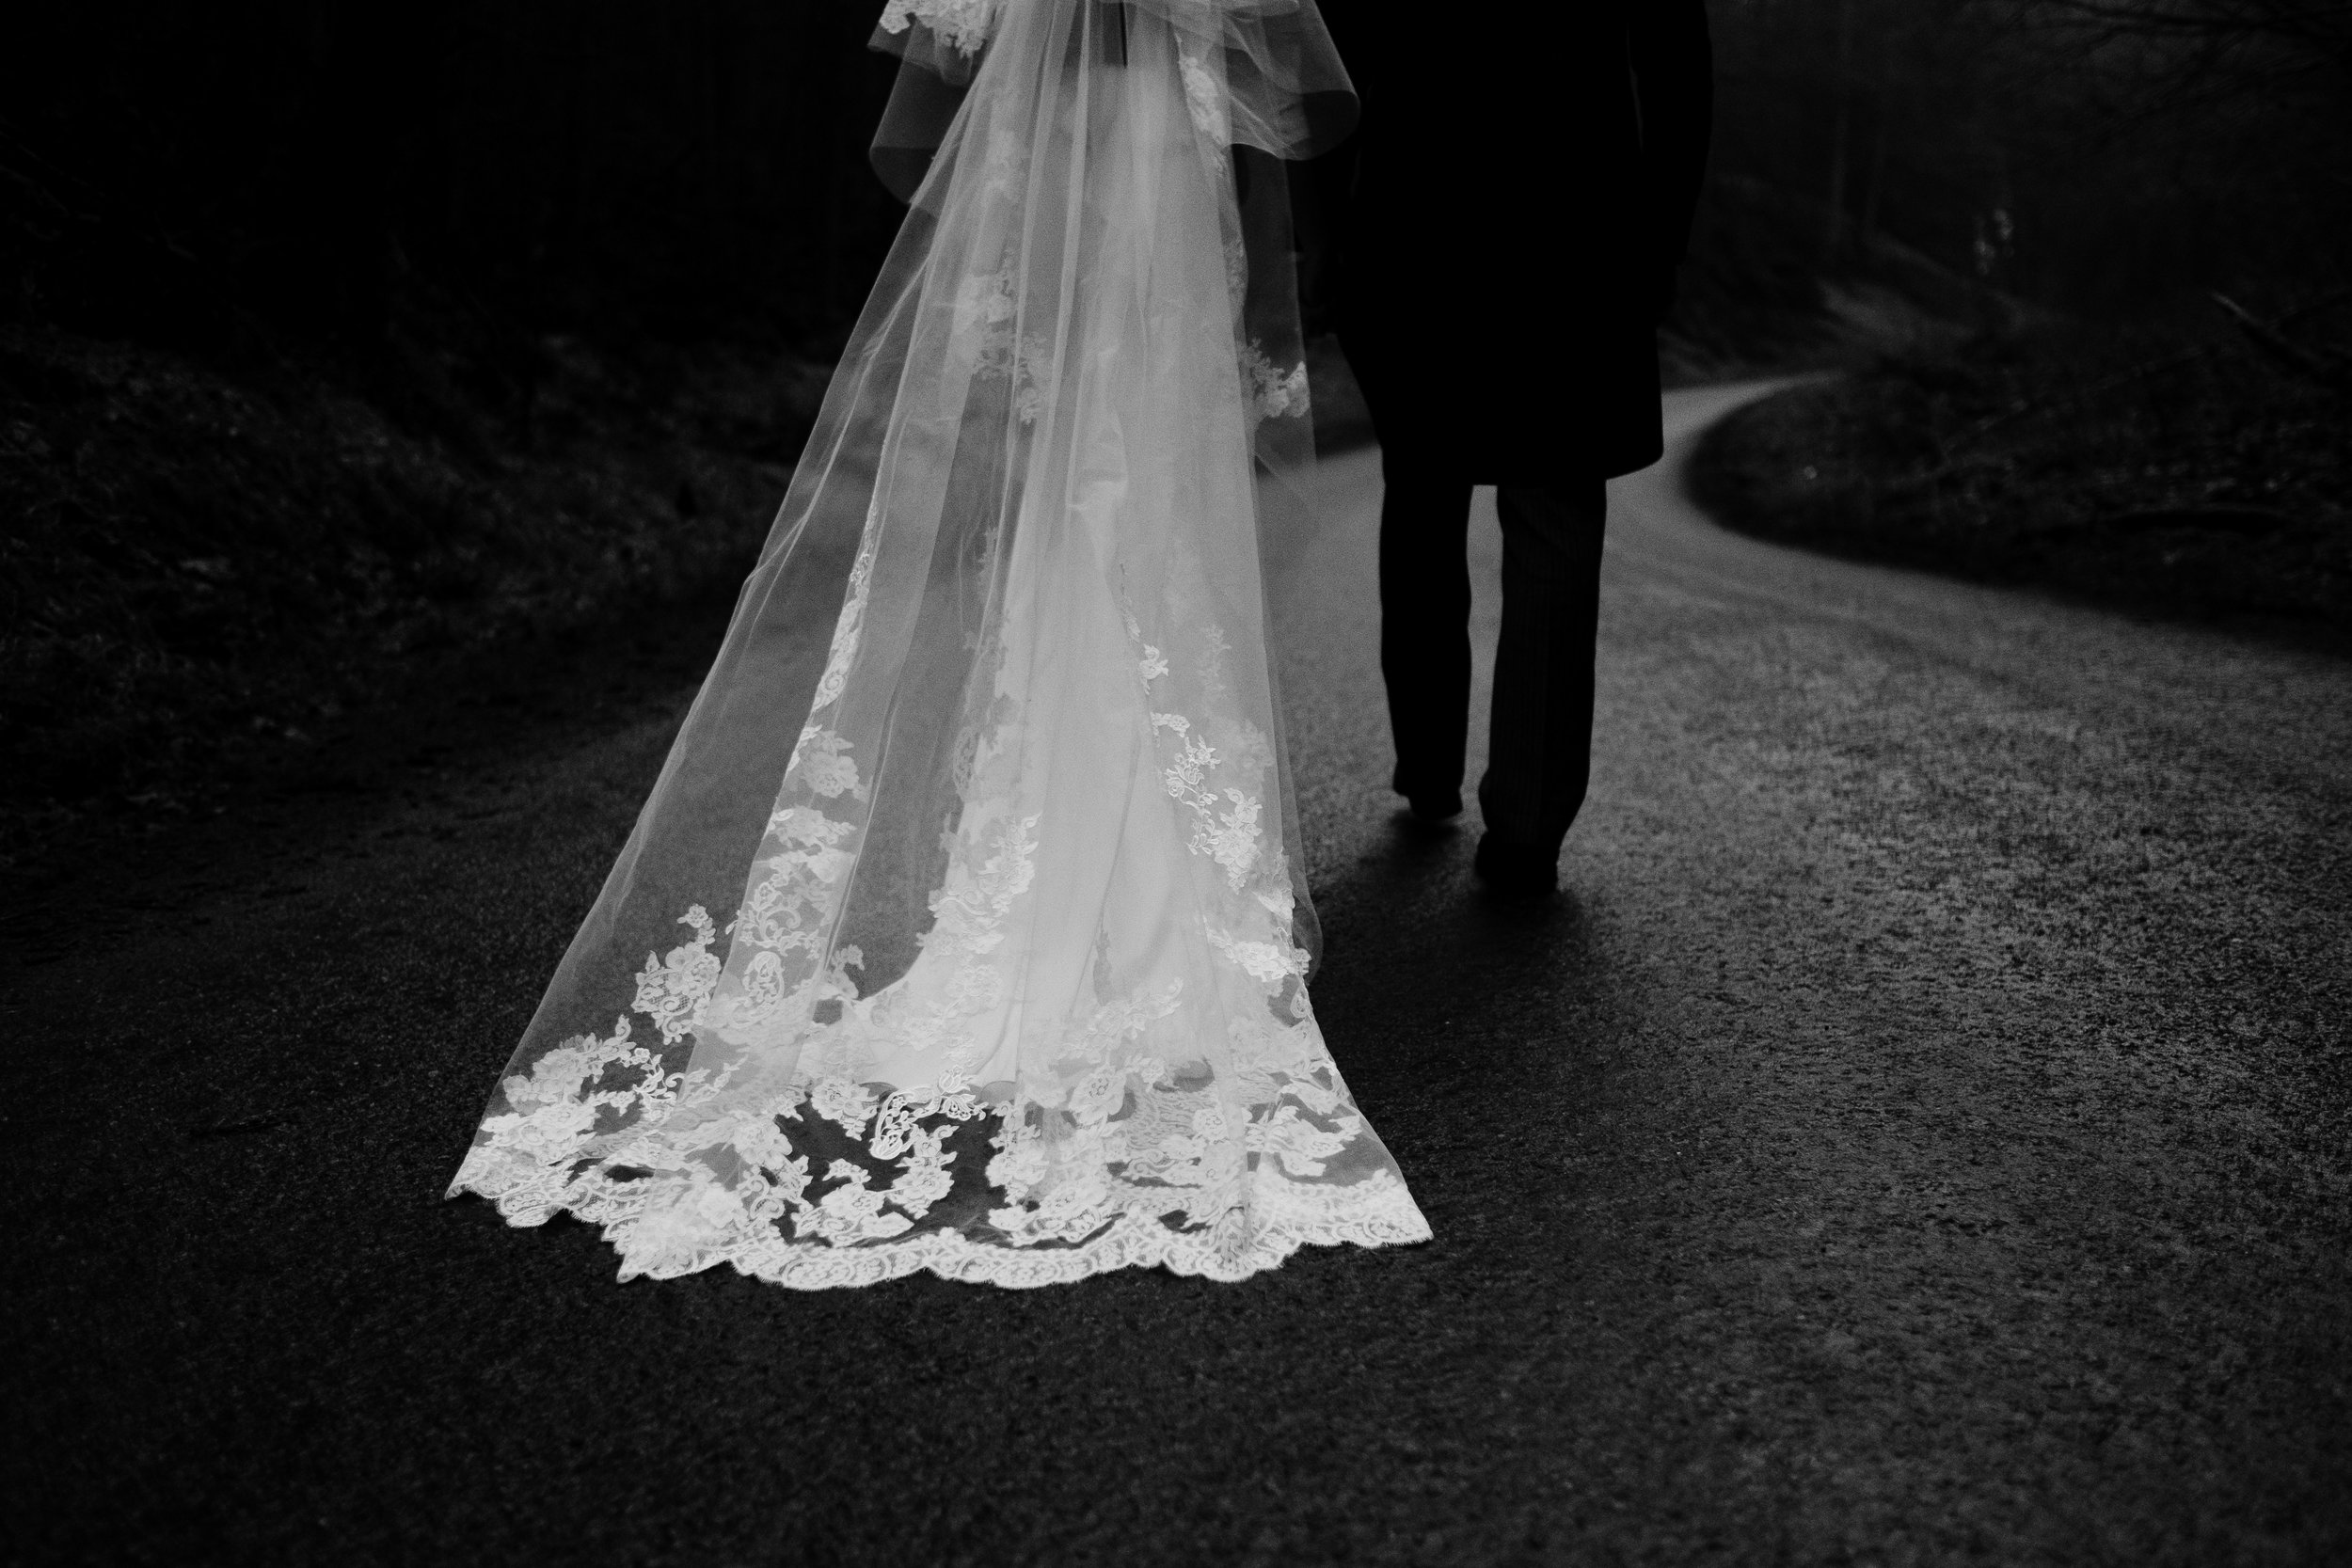 Bridal dress drapes along the wet ground